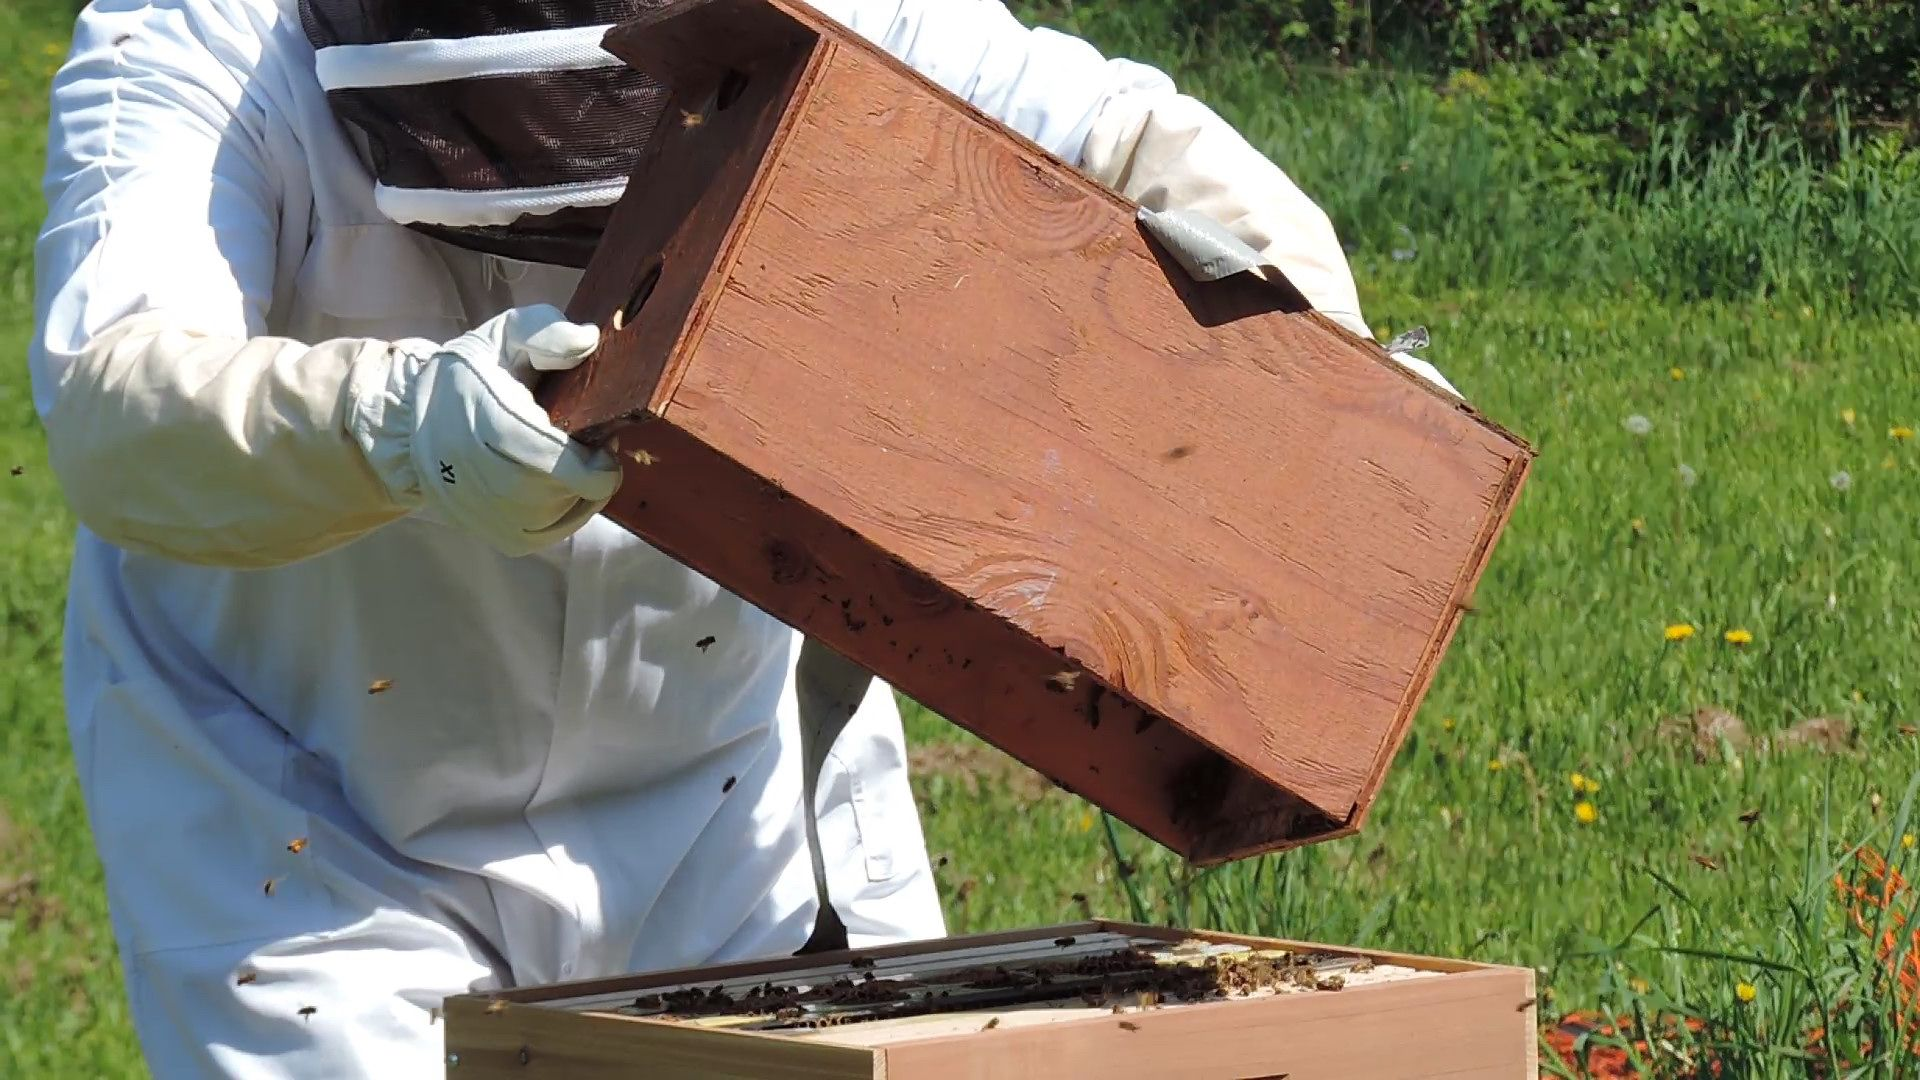 How to make a moisture quilt for a langstroth hive honey - Dumping Bees Into The New Hive